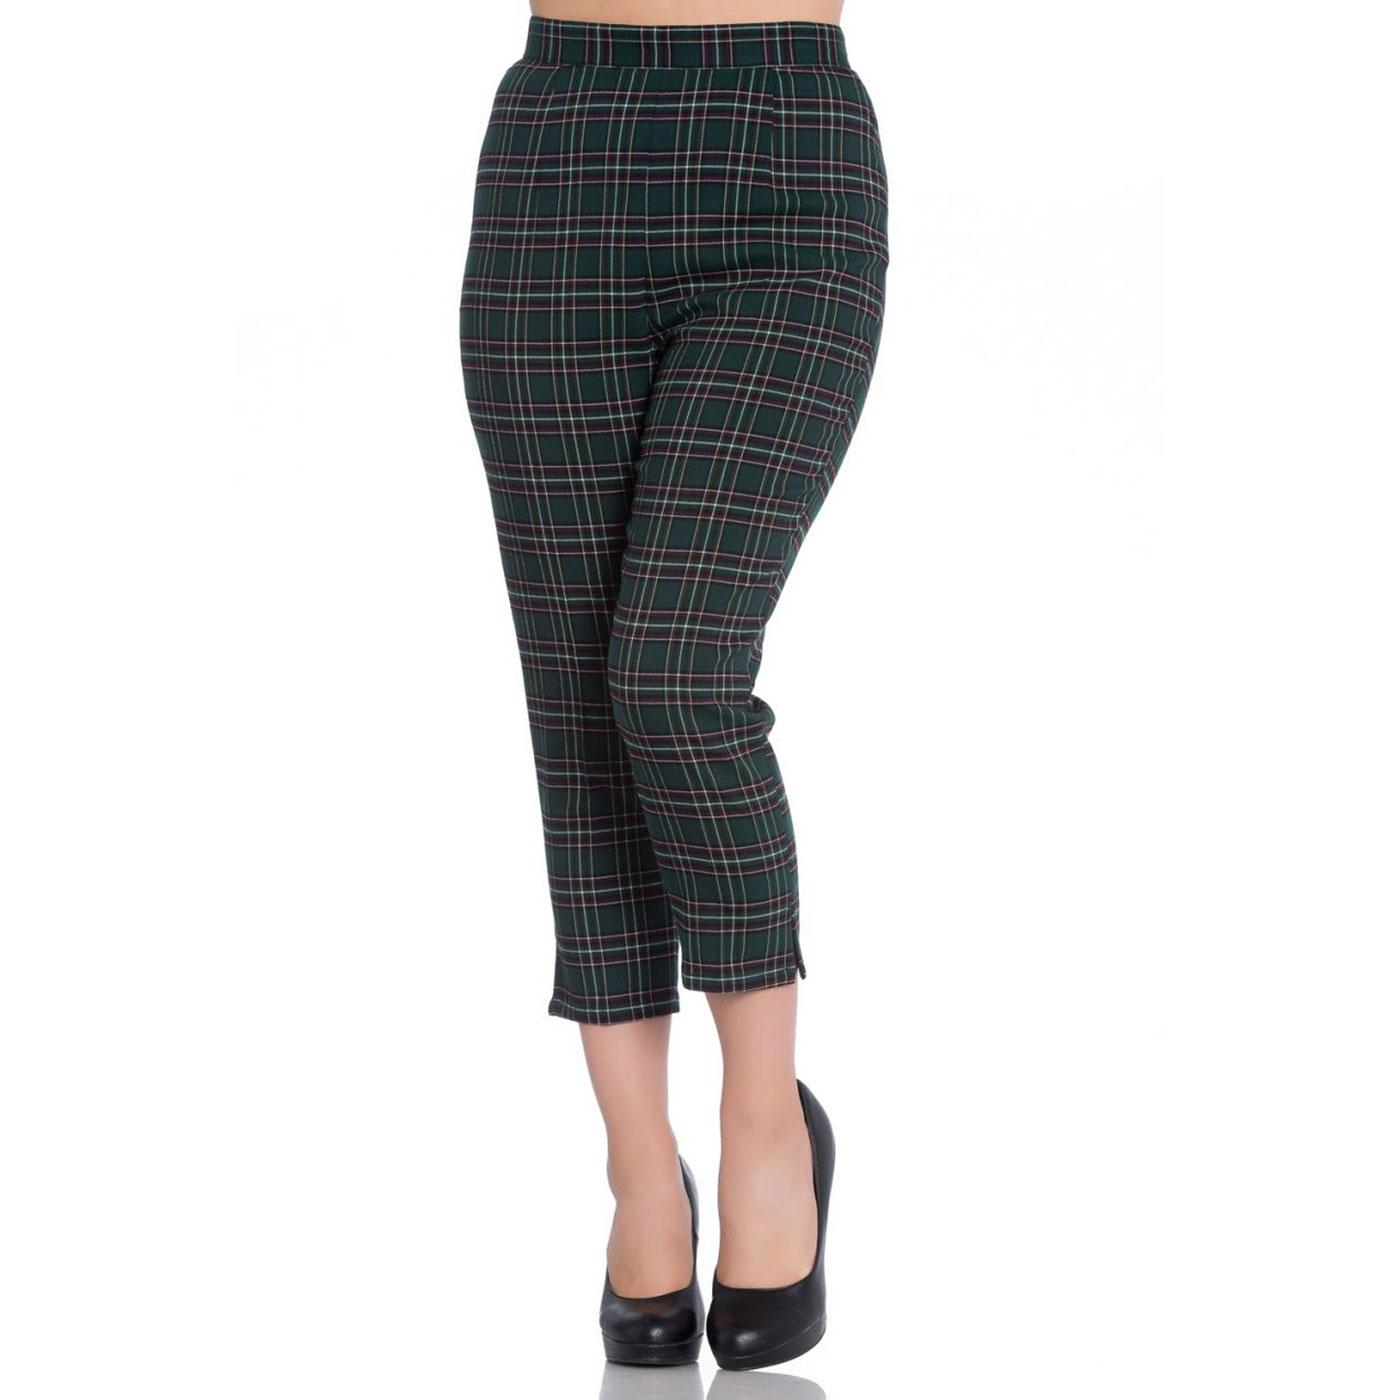 Peebles HELL BUNNY 50s Cigarette Trousers GREEN